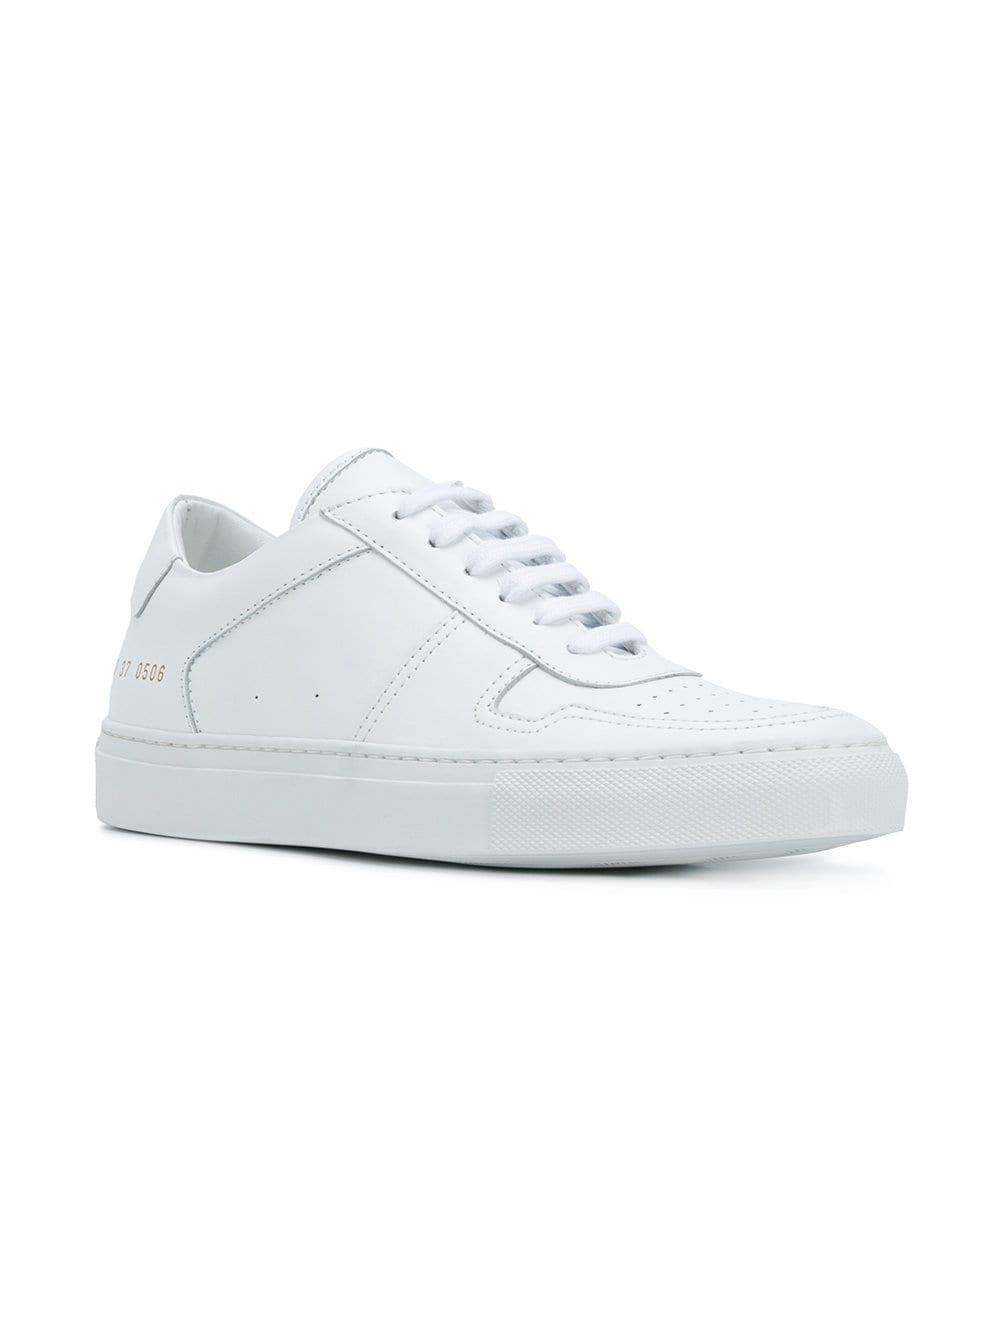 Common Projects Leather Bball Low Sneakers in White